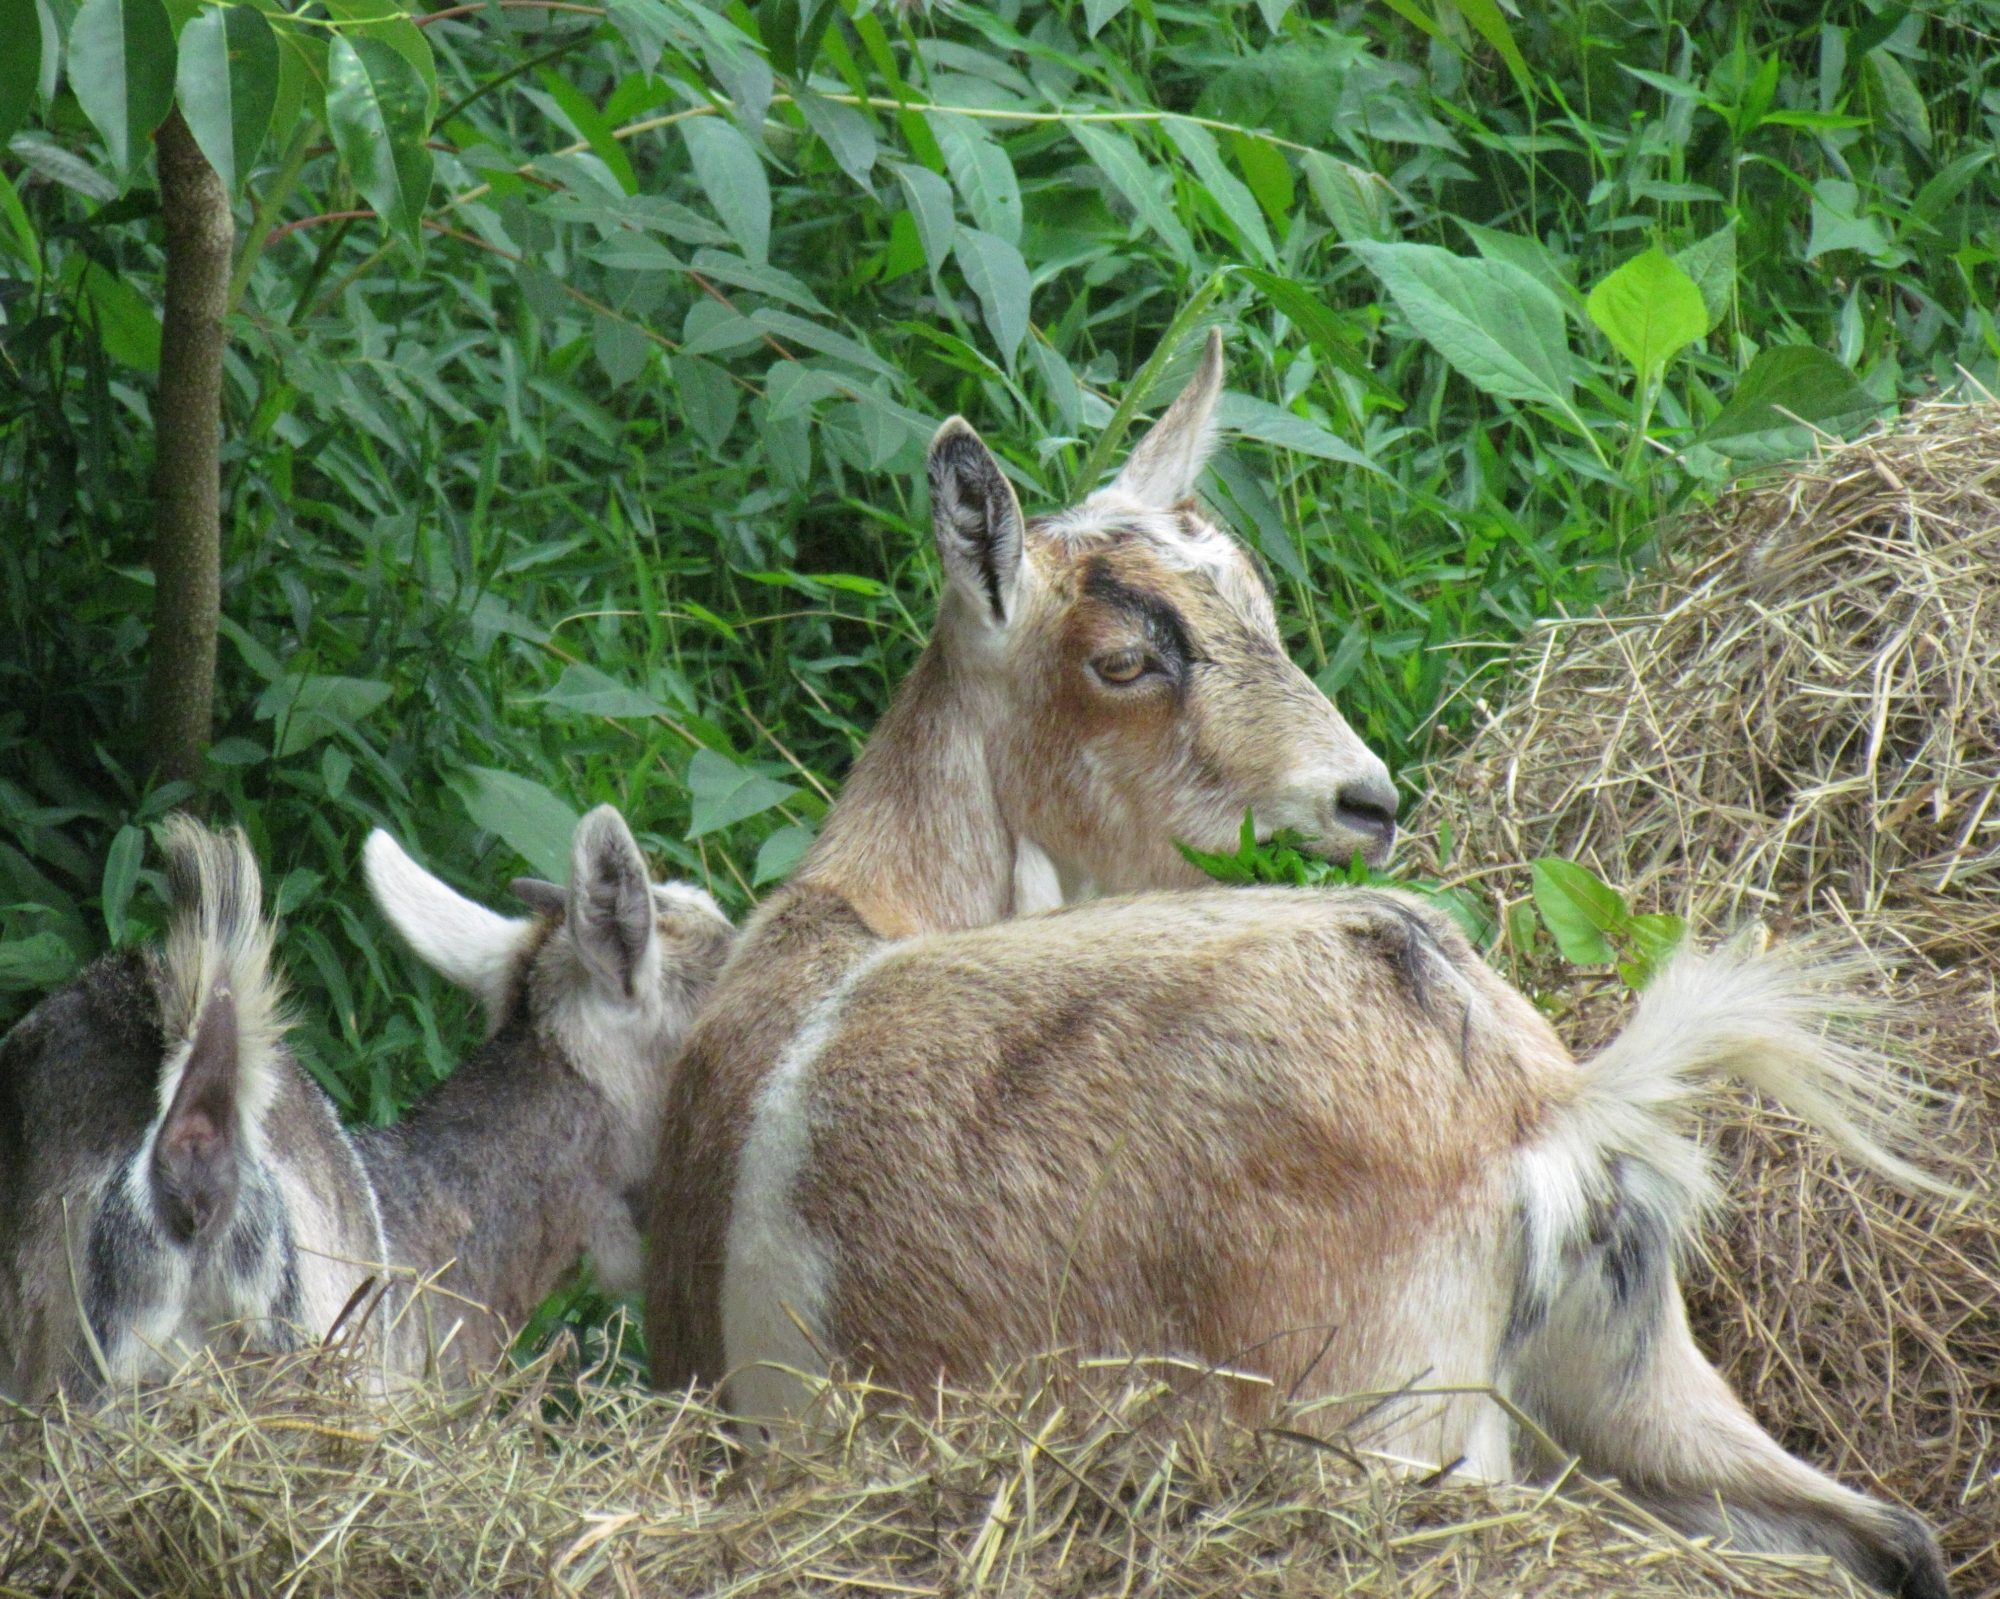 want backyard goats please help